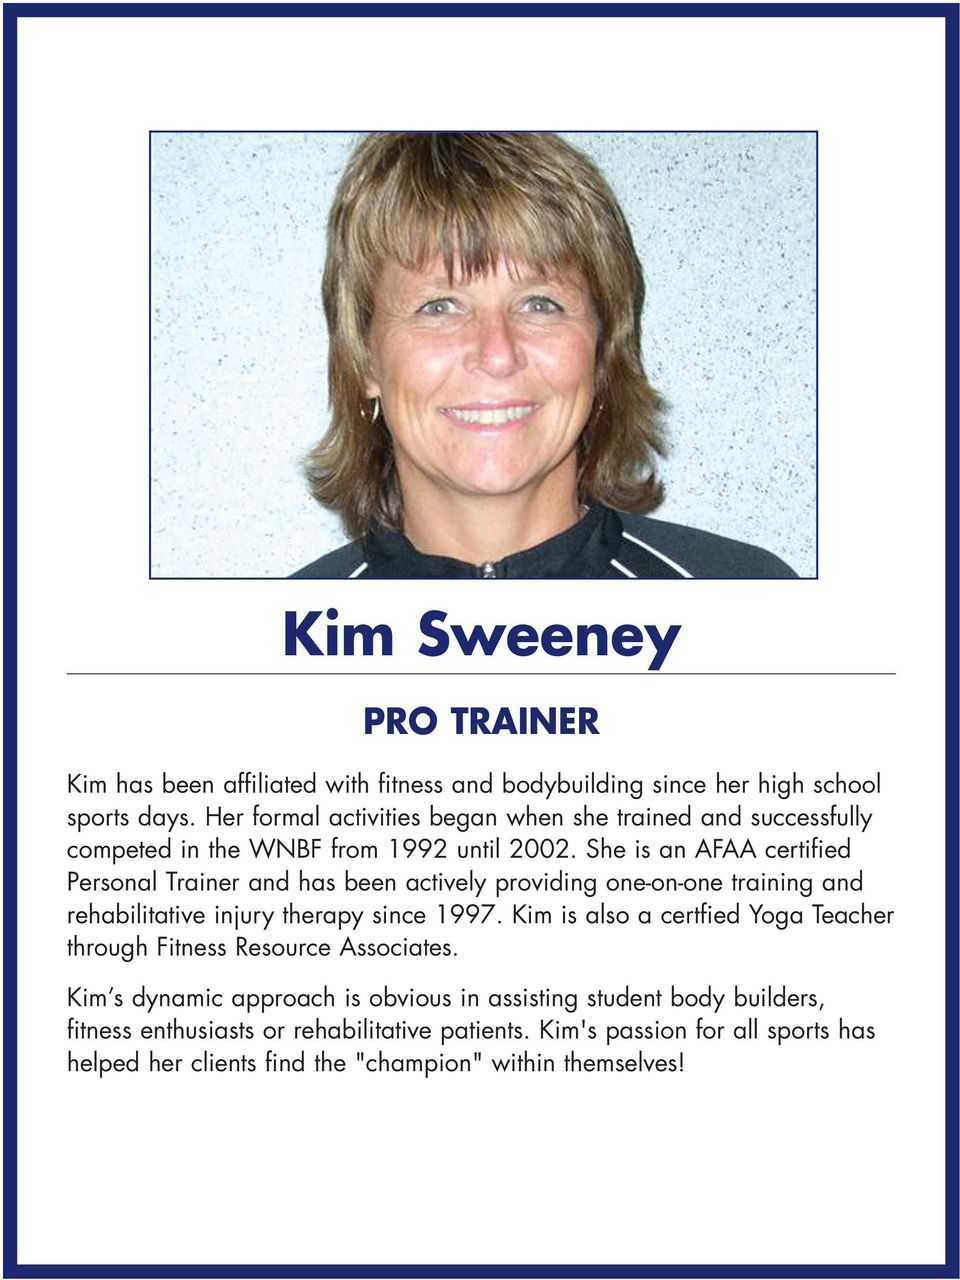 She is an AFAA certified Personal Trainer and has been actively providing one-on-one training and rehabilitative injury therapy since 1997.